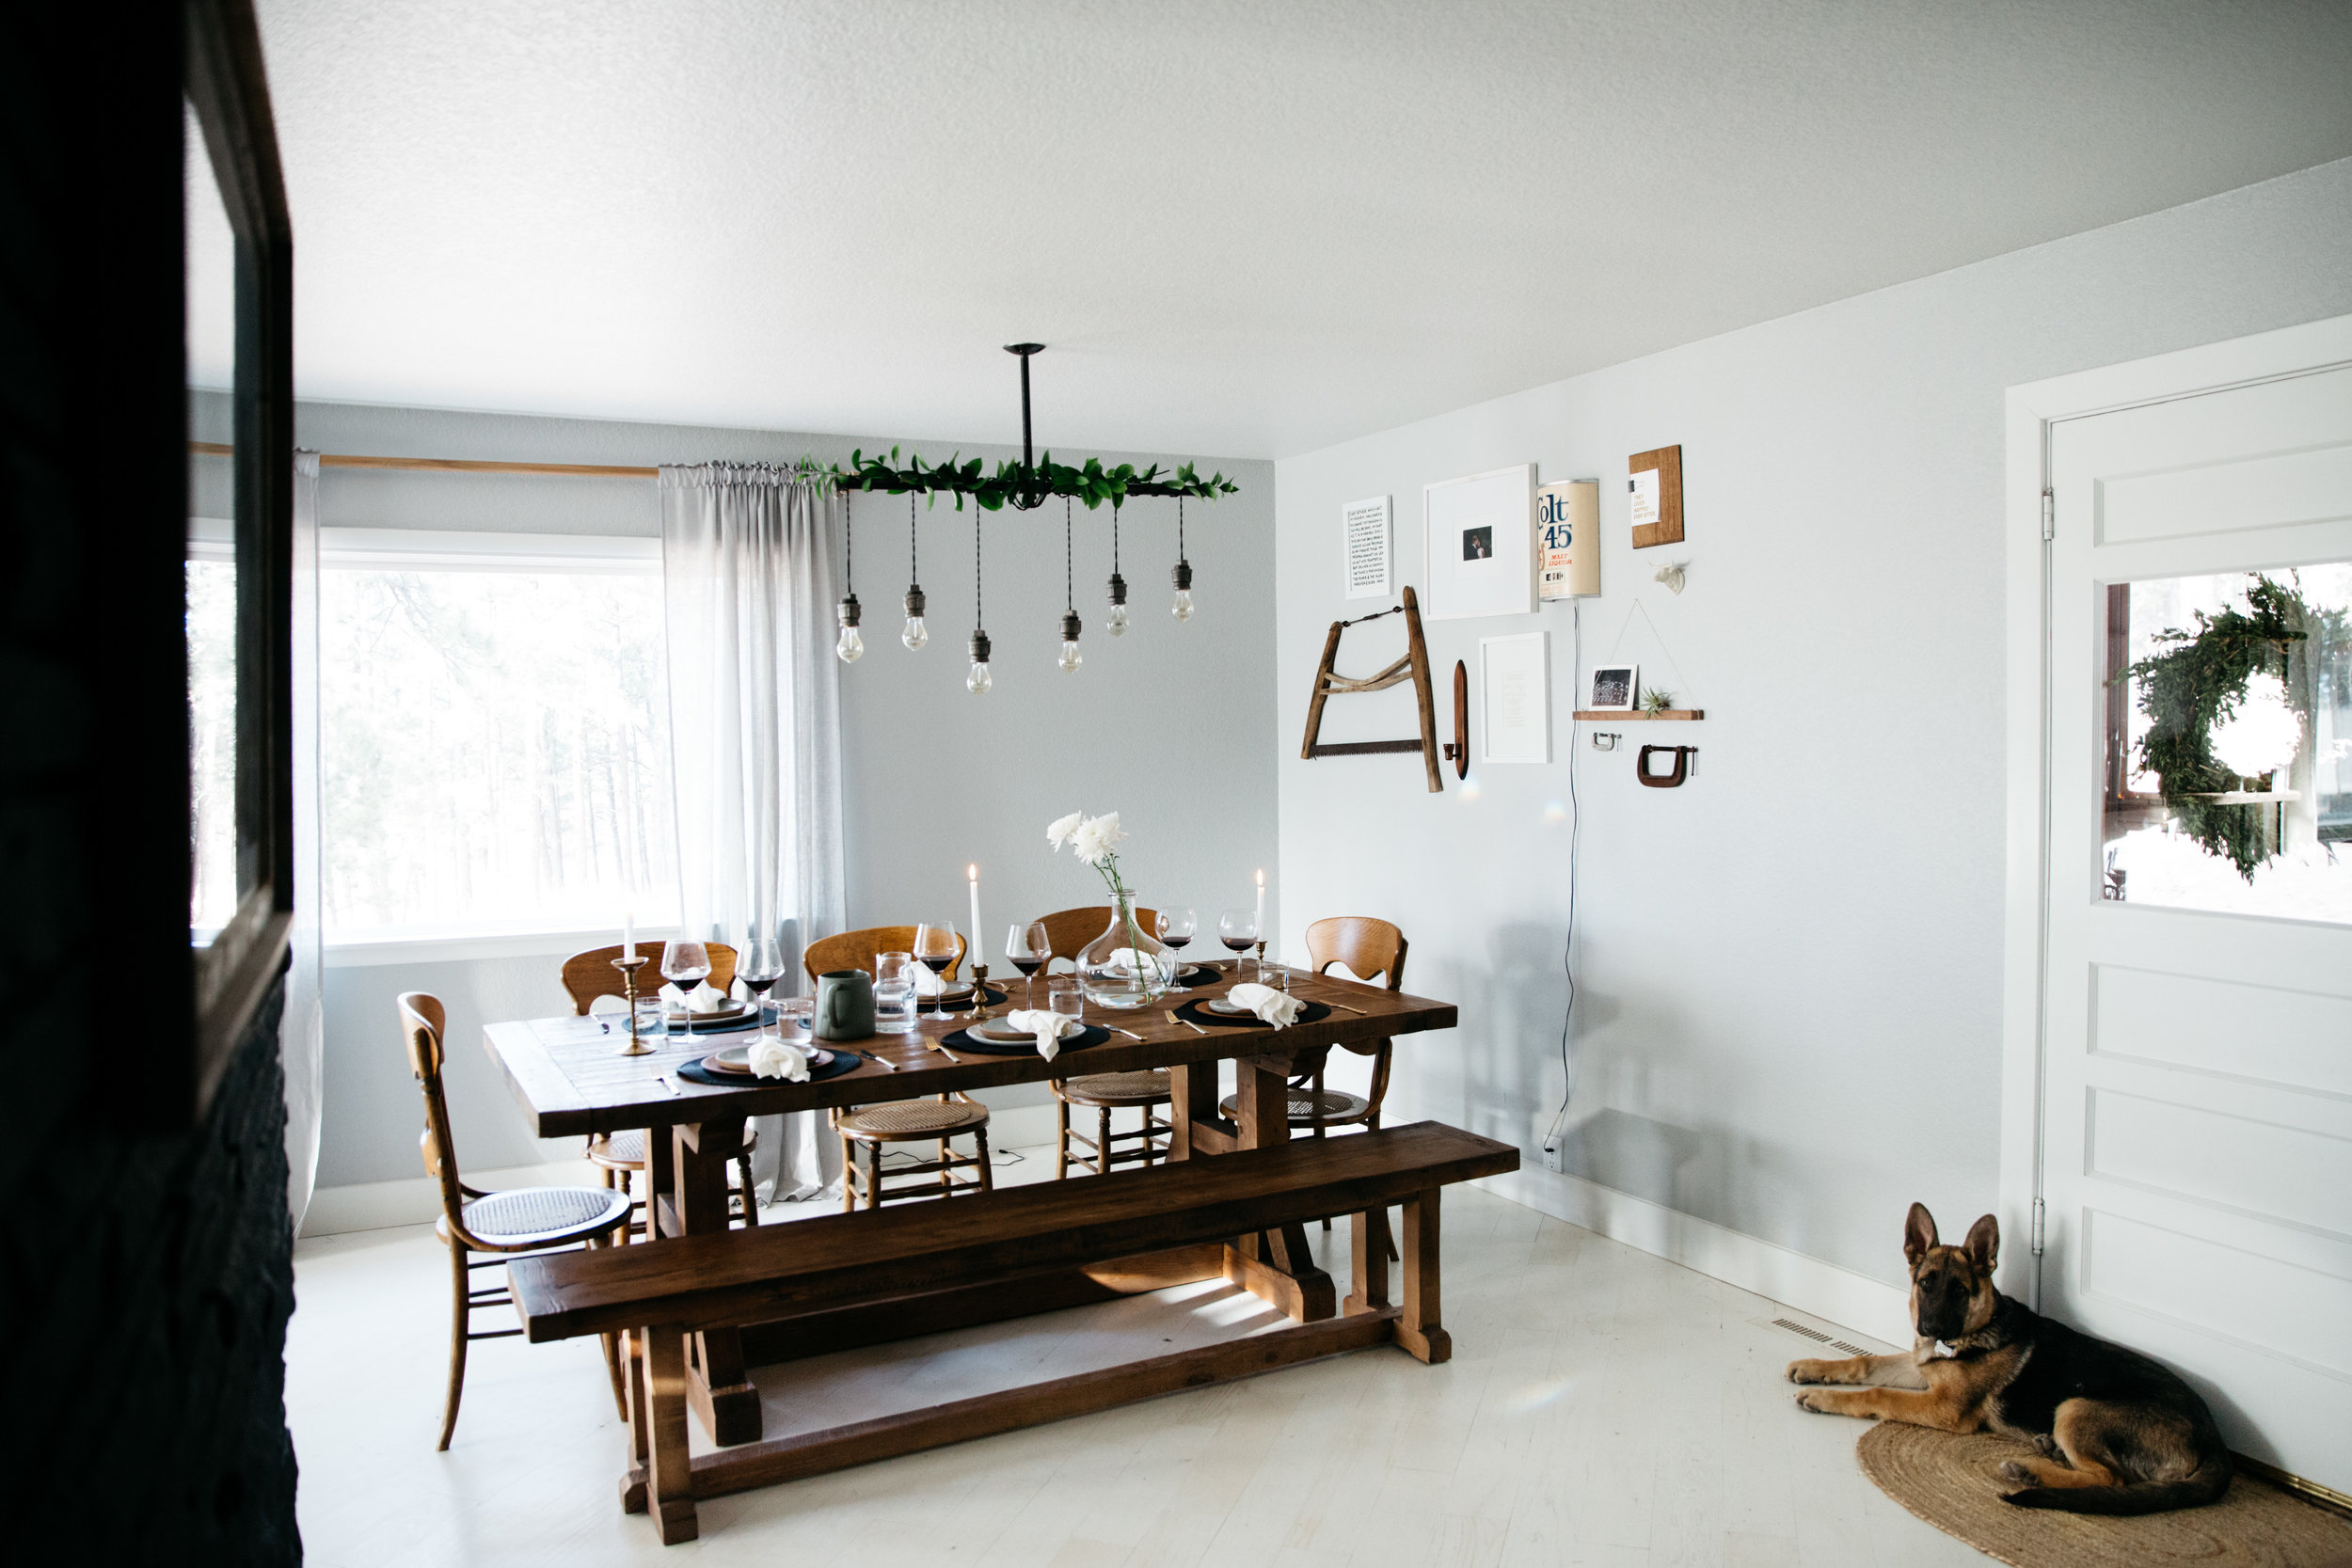 mitchell-dining-room-after-5.jpg